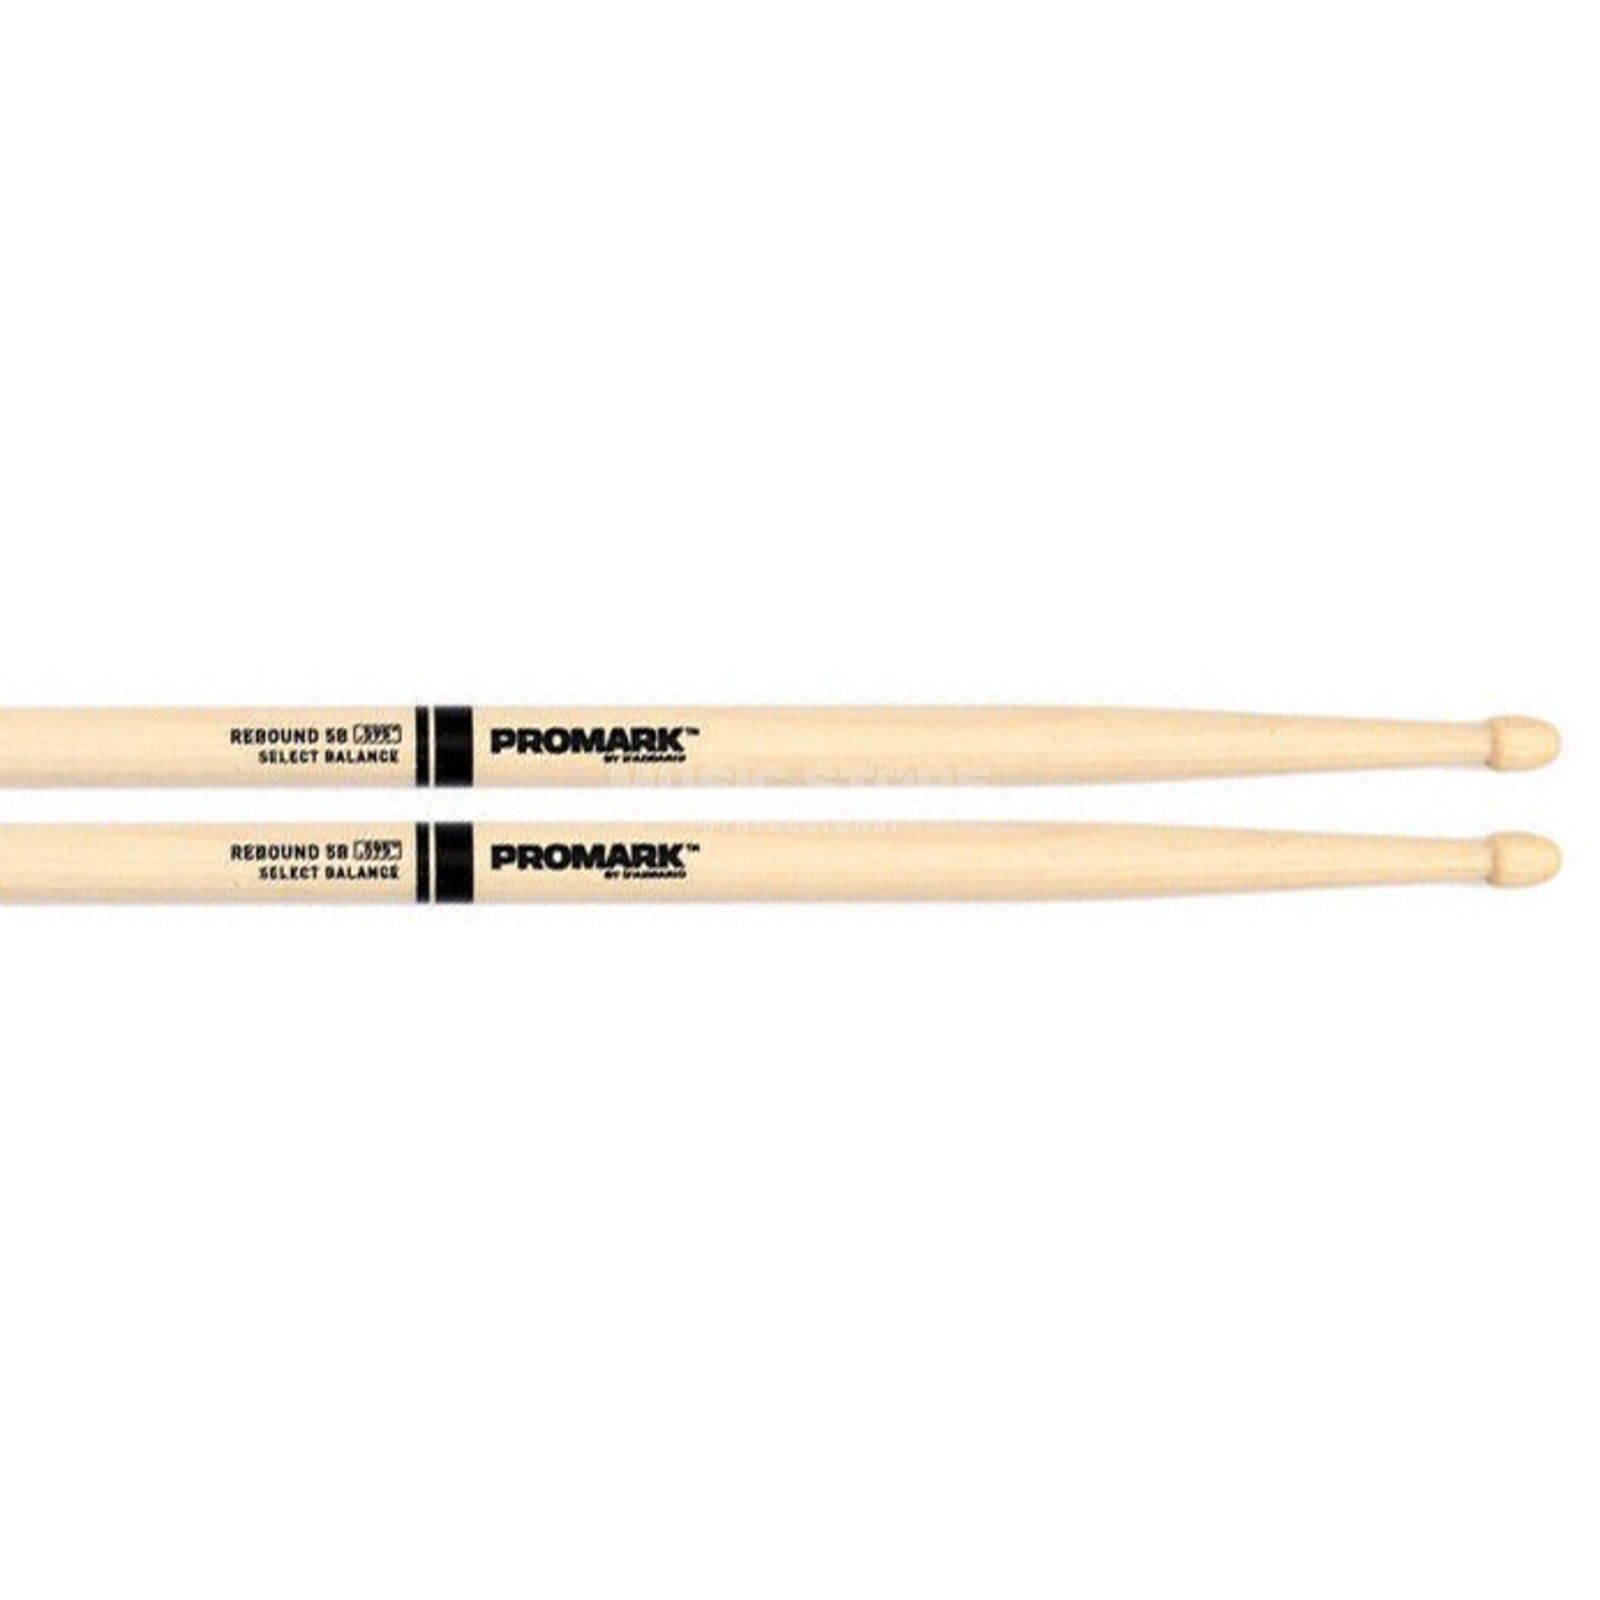 PRO-MARK Select Balance Sticks RBH595AW Rebound Balance, Acorn Tip Imagen del producto